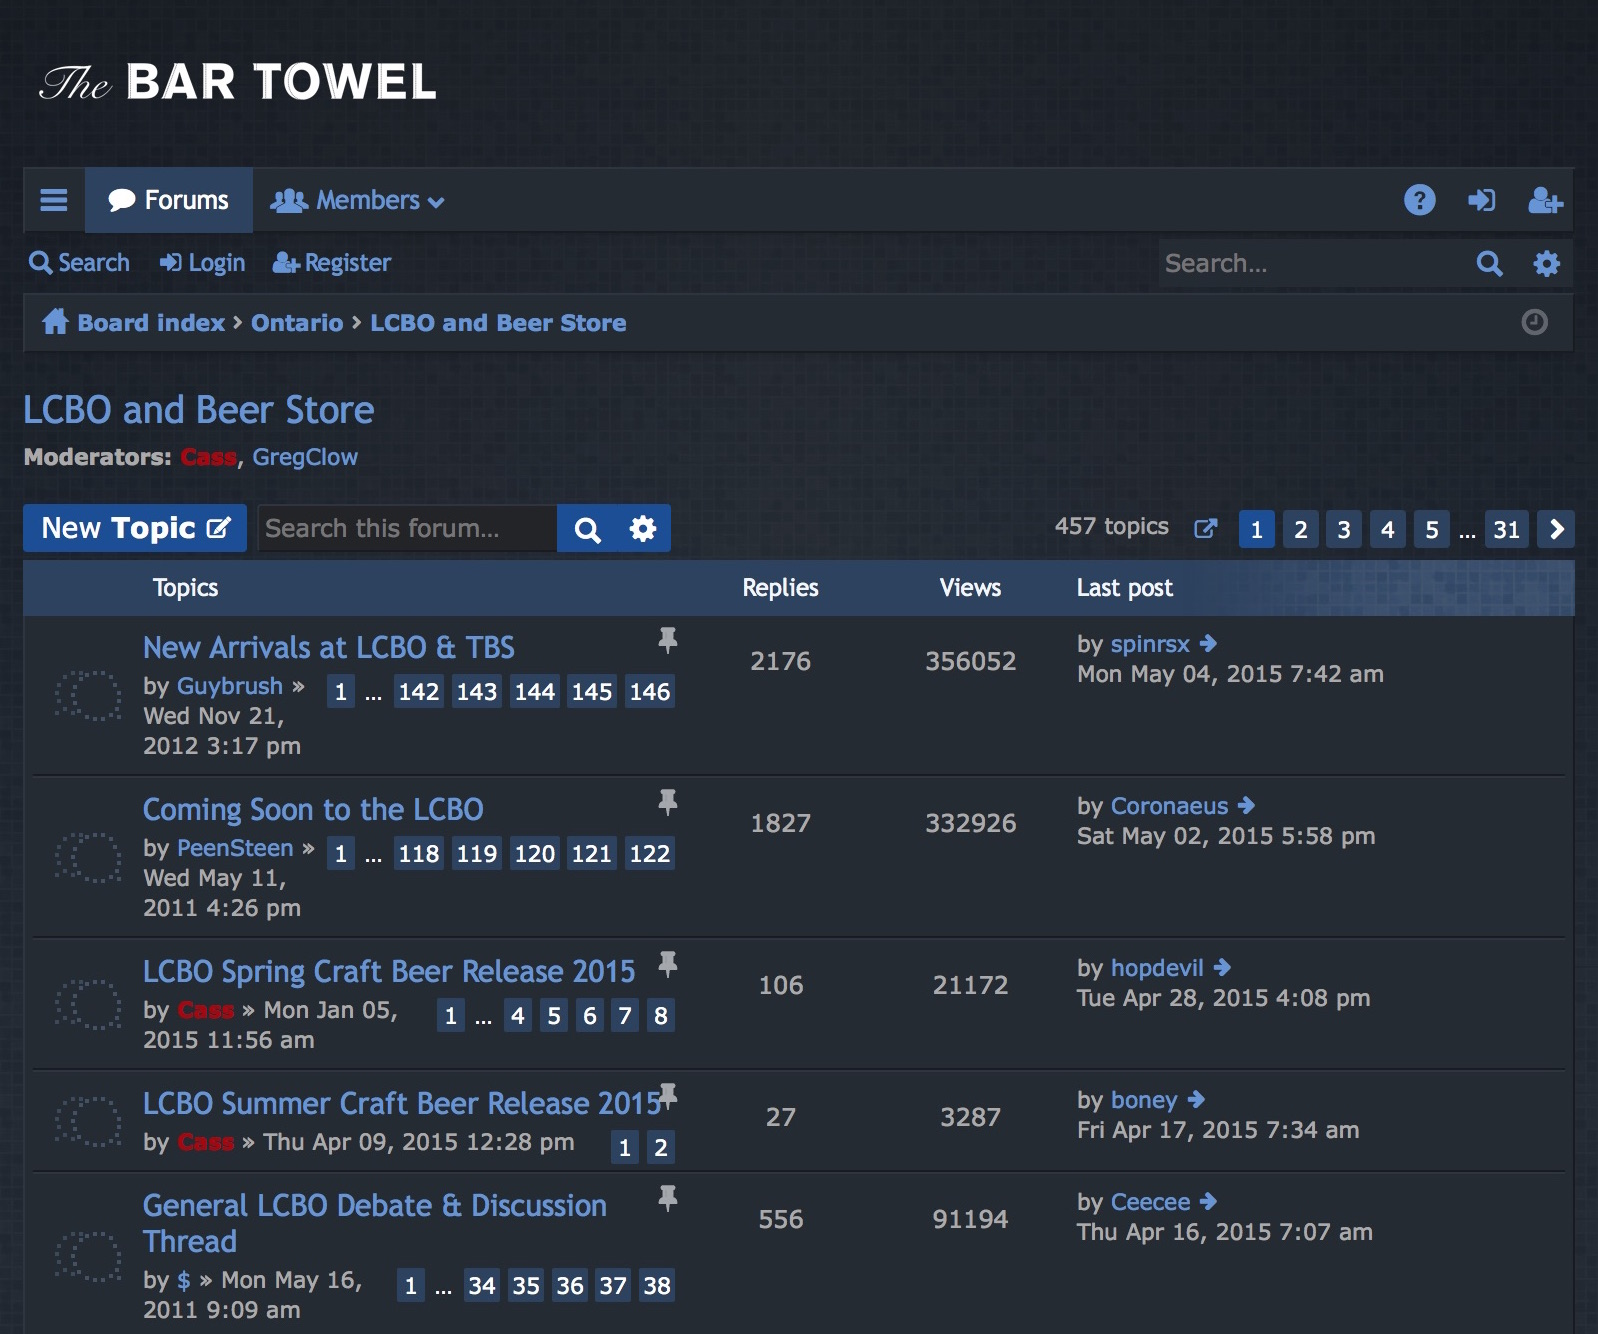 The Bar Towel Discussion Forum Relaunches